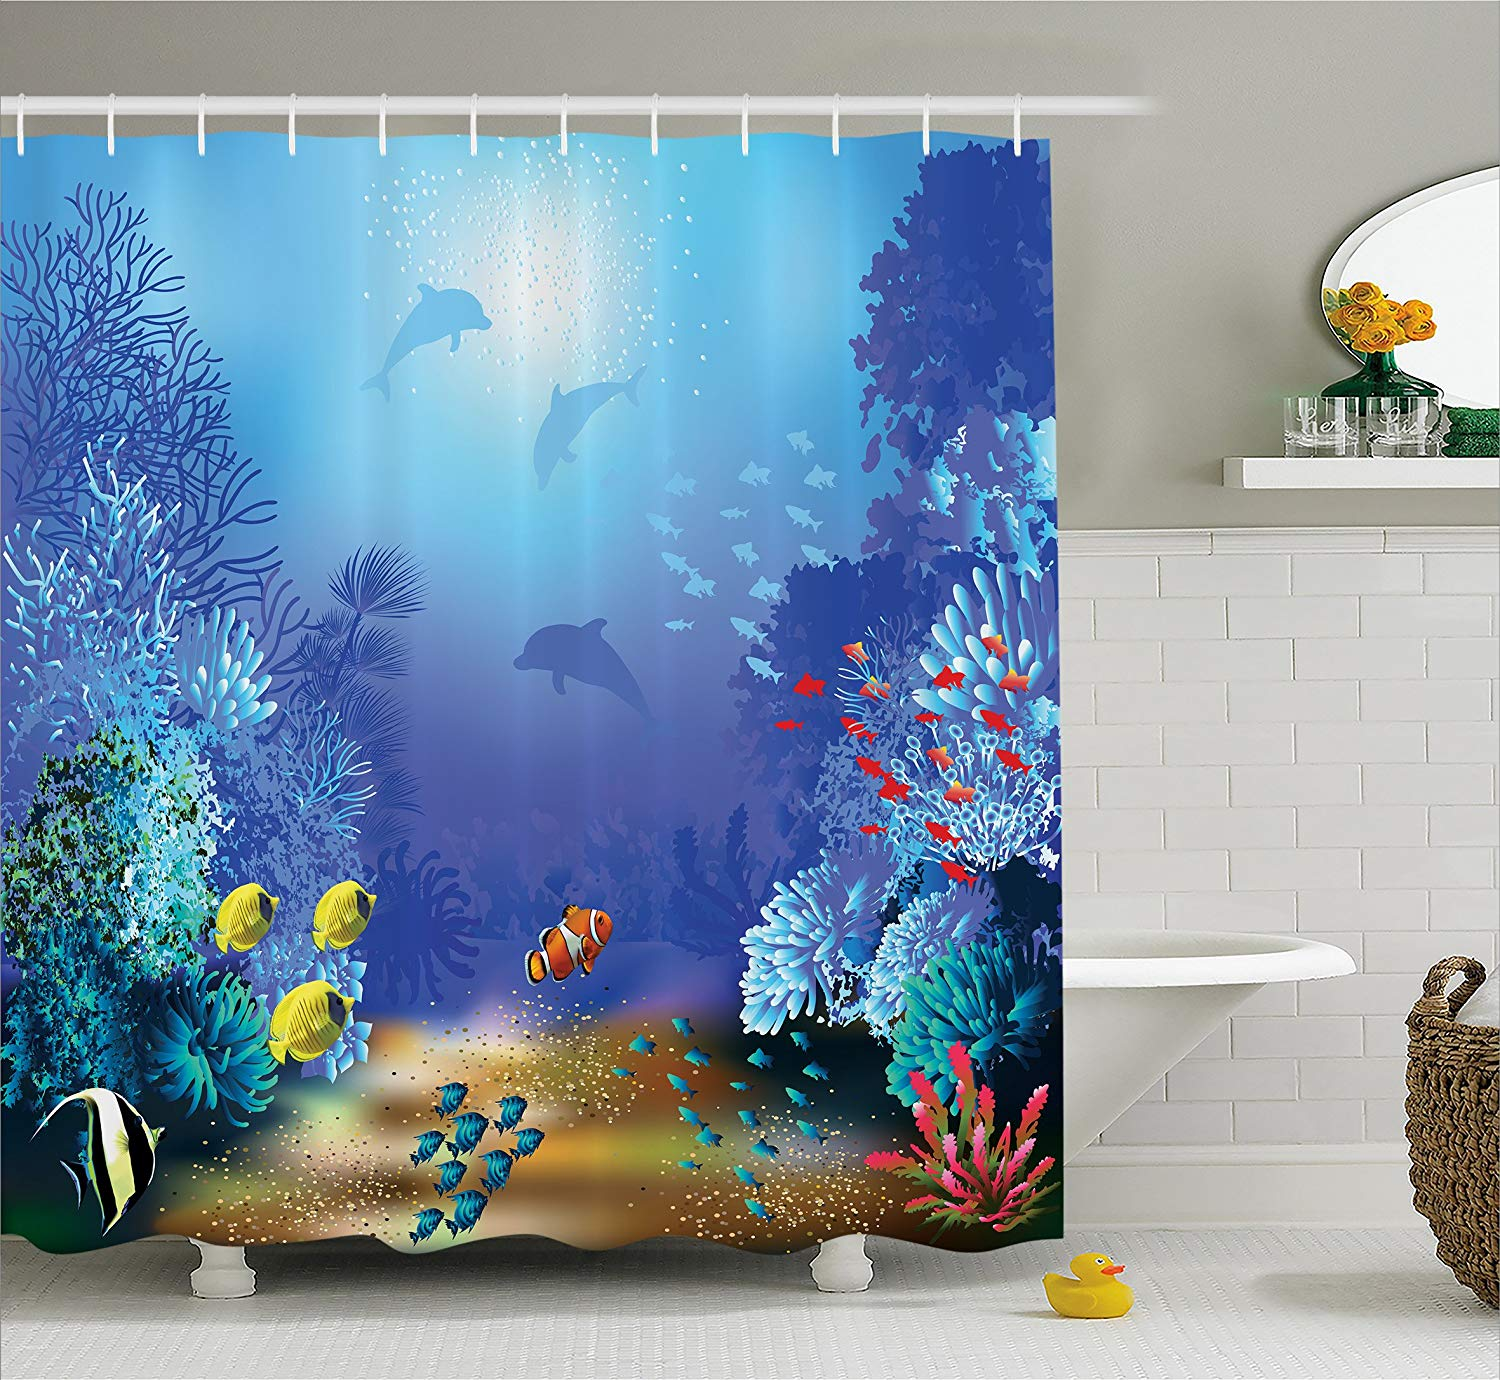 Ocean Animal Decor Shower Curtain And Mat Set, Underwater